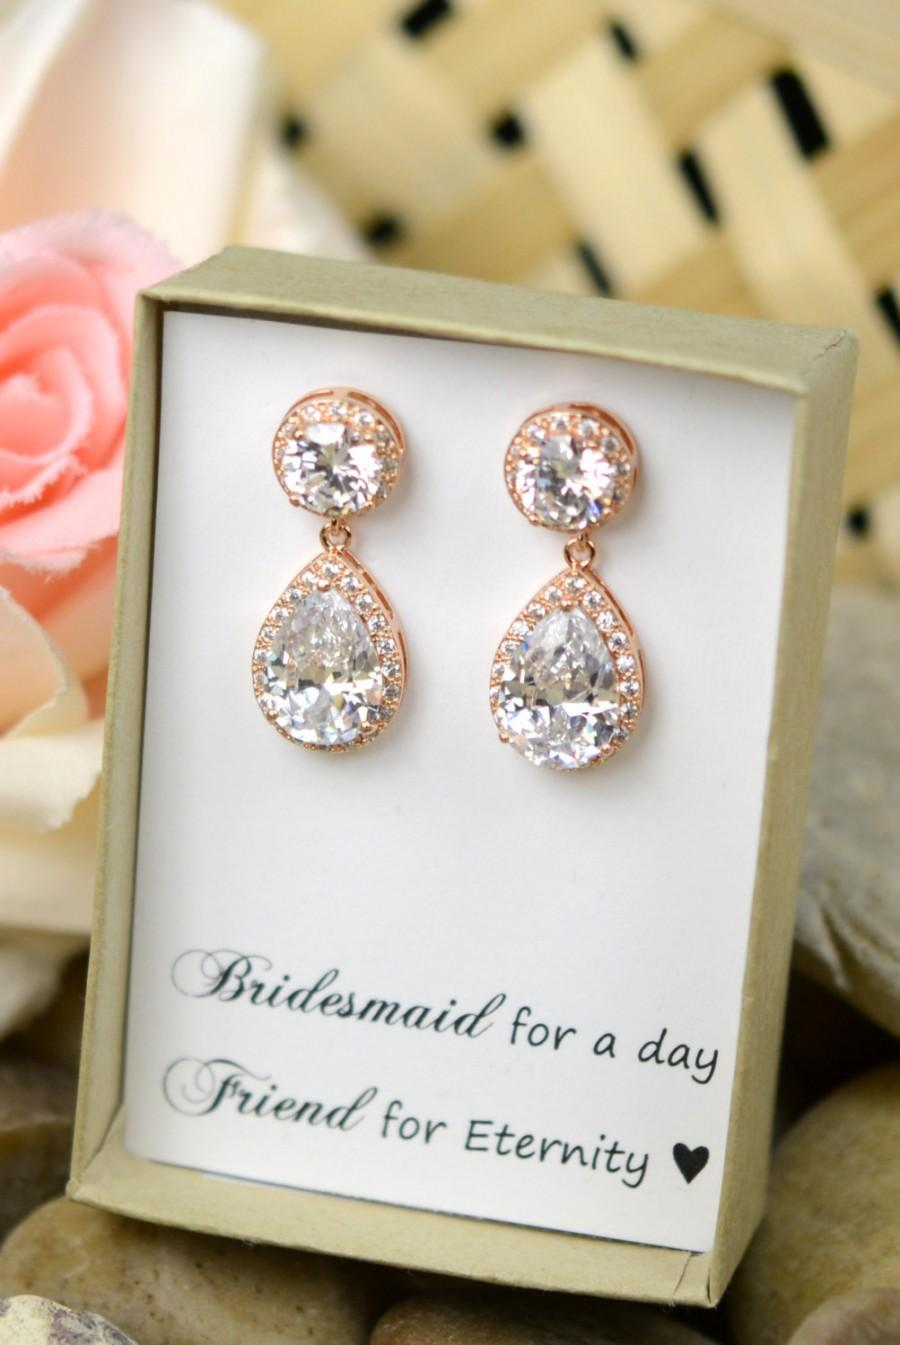 Rose Gold Earrings,wedding Earrings, Bridesmaid Gift, Bridal Earrings,  Cubic Zirconia ,clear, White Teardrop Studs Earrings,cz Post Earrings